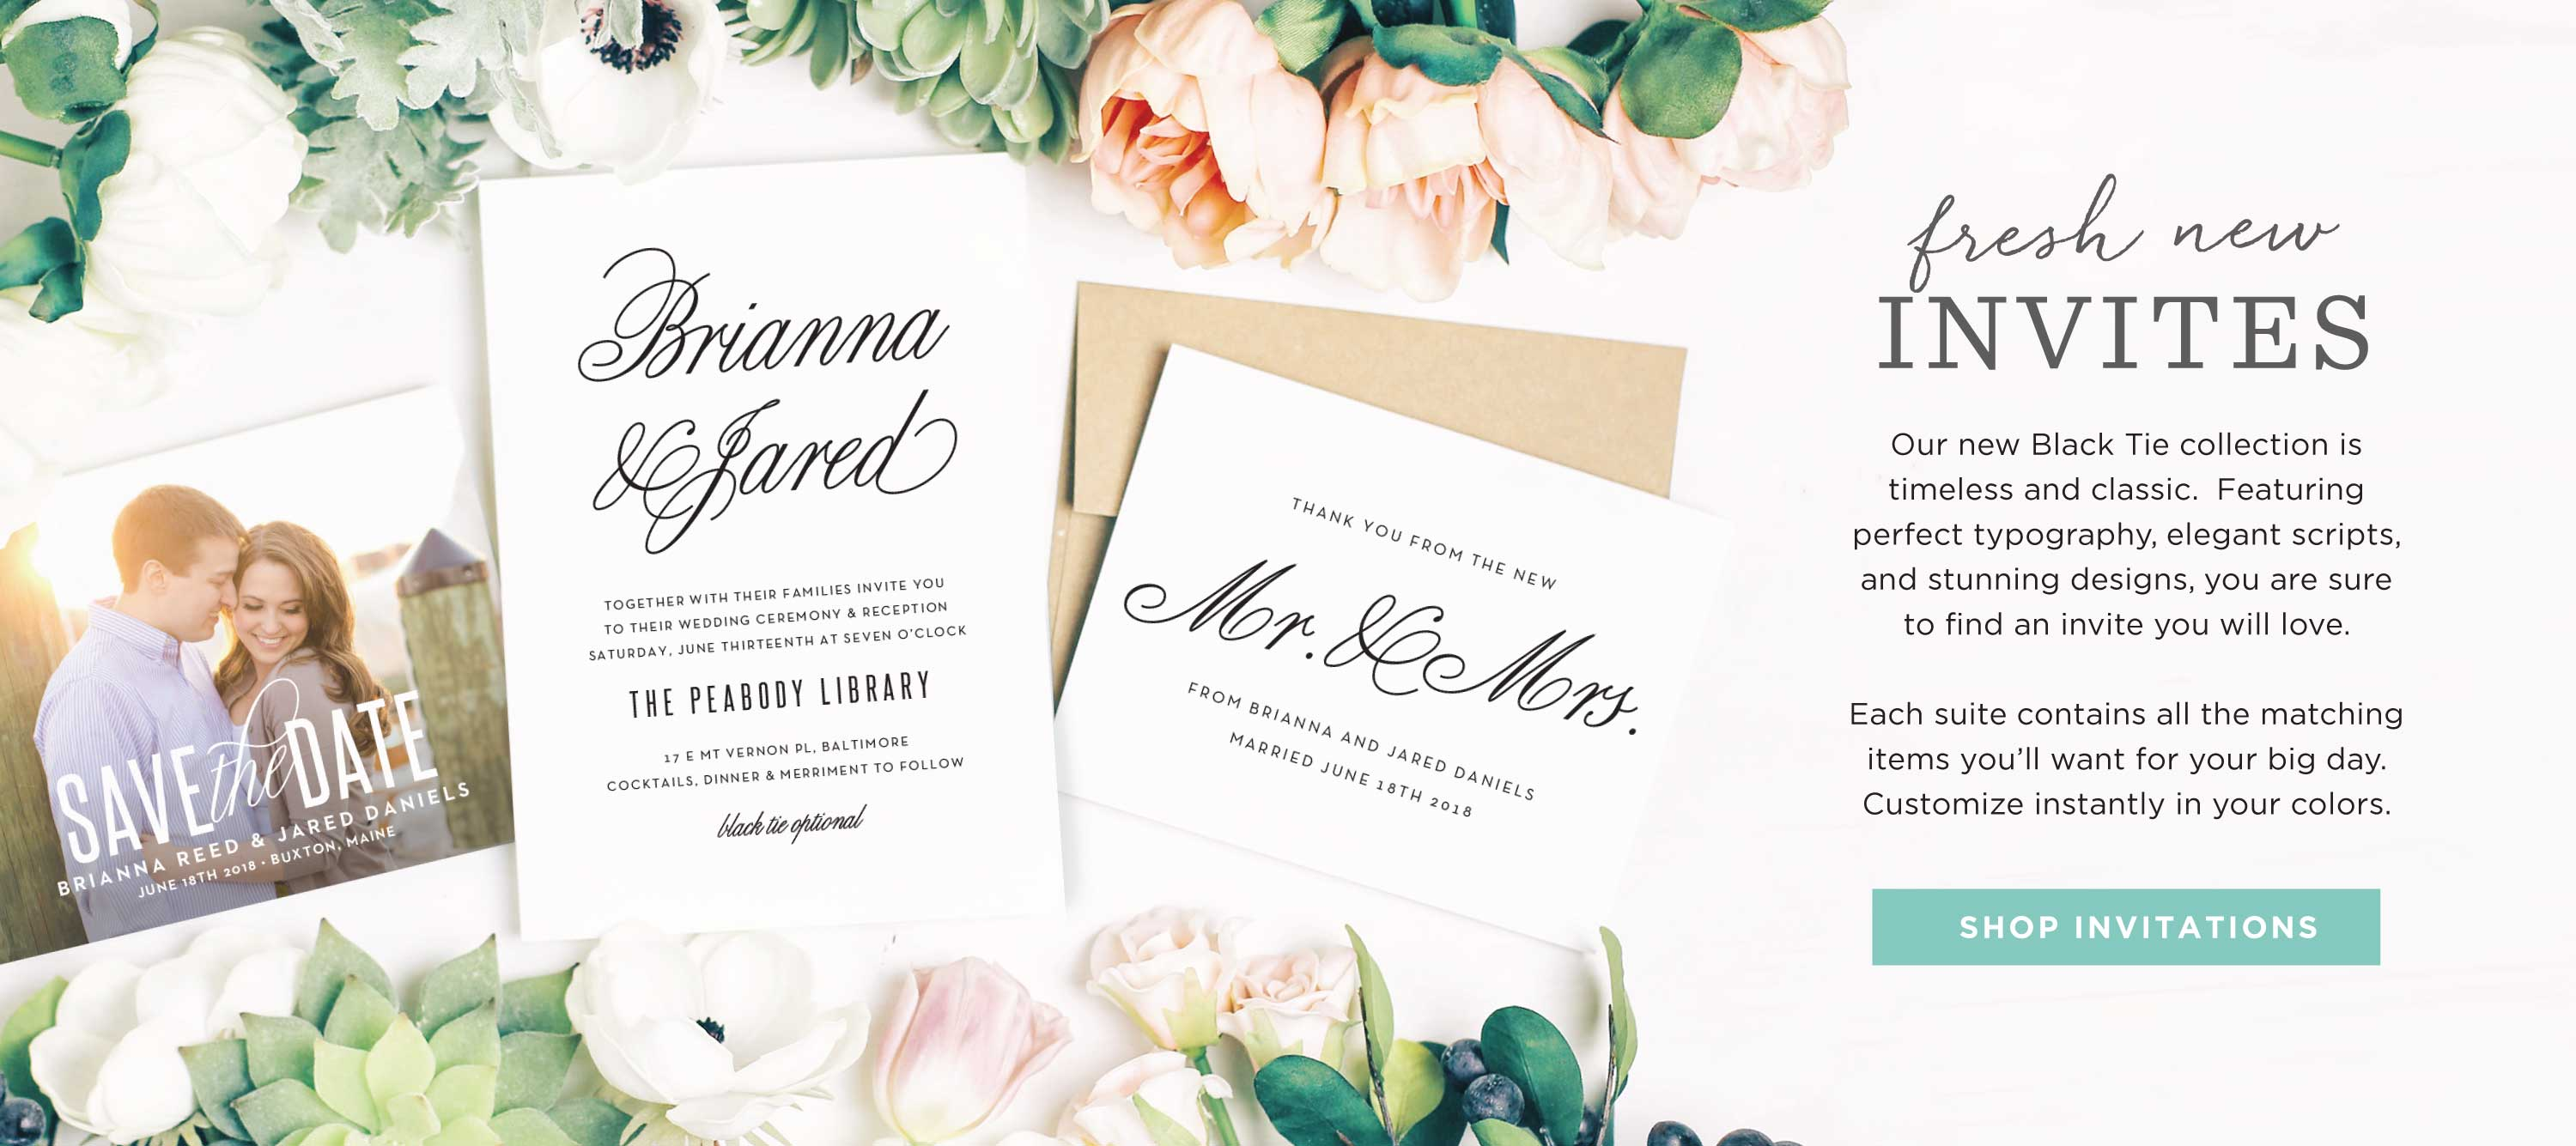 Simple Rehearsal Dinner Invitations as beautiful invitation ideas